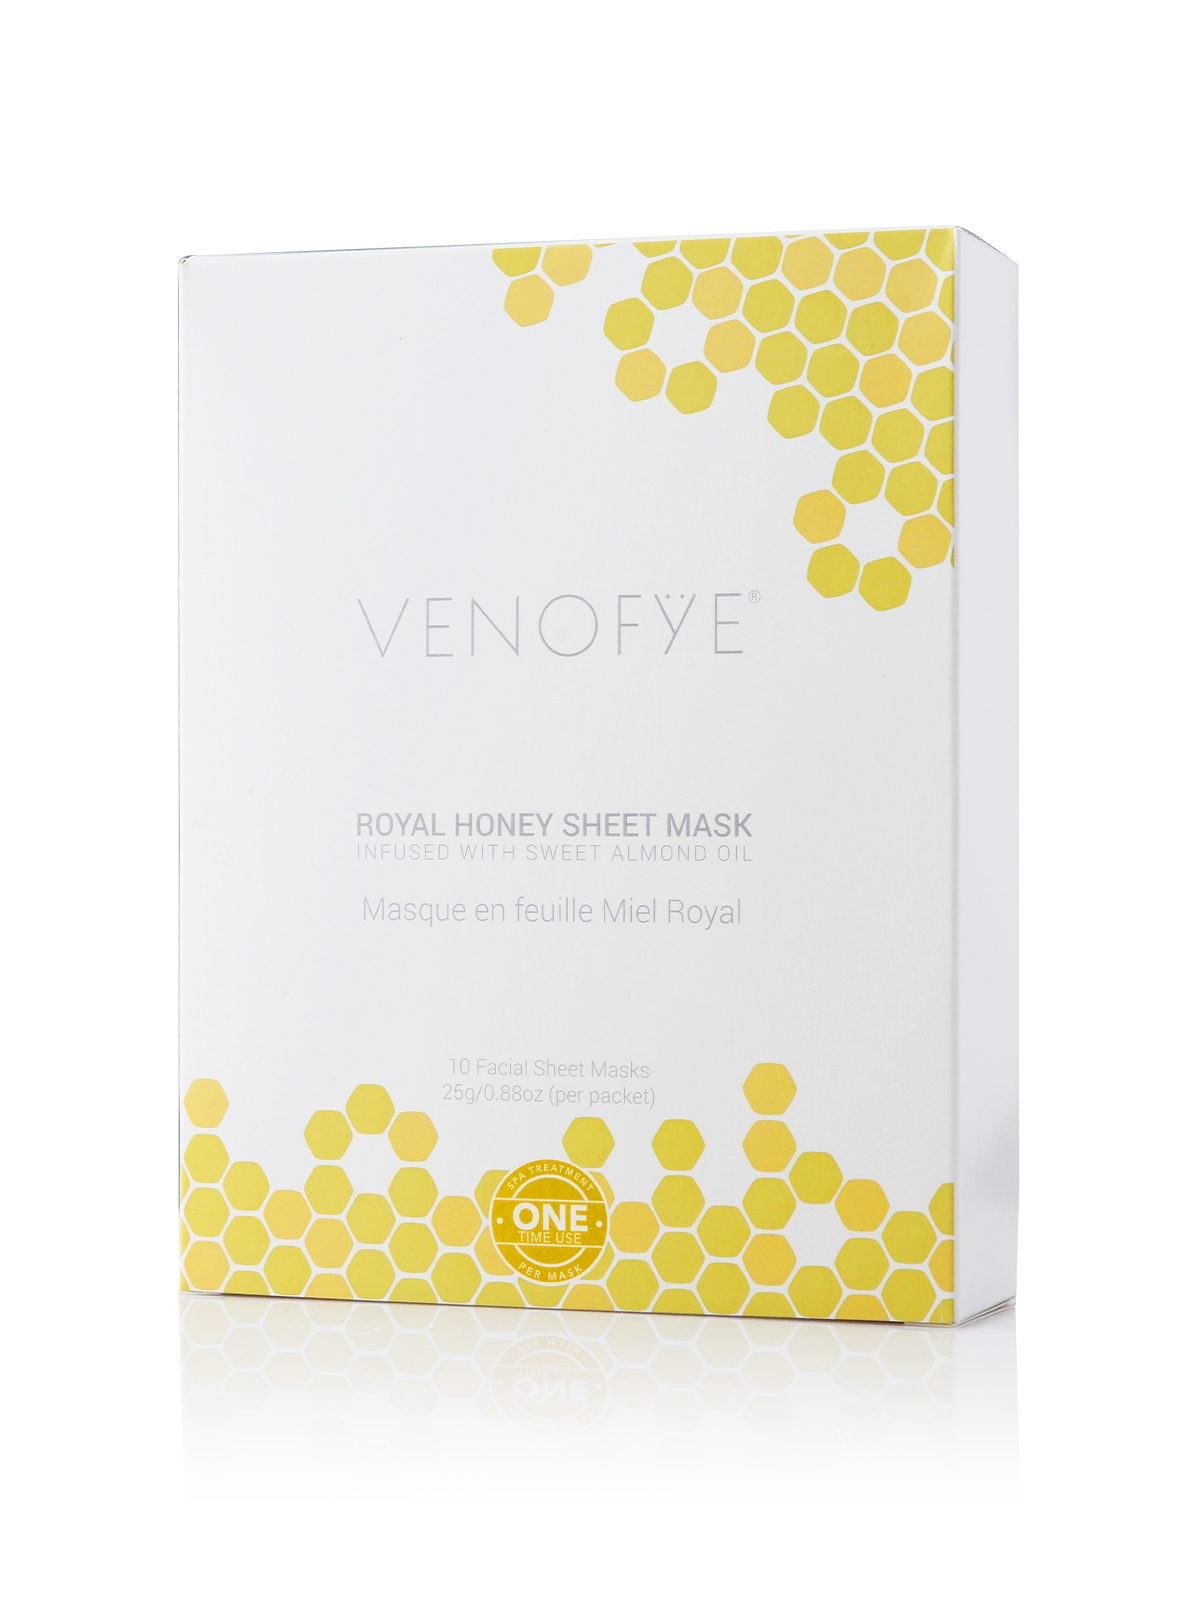 Royal Honey Sheet Mask